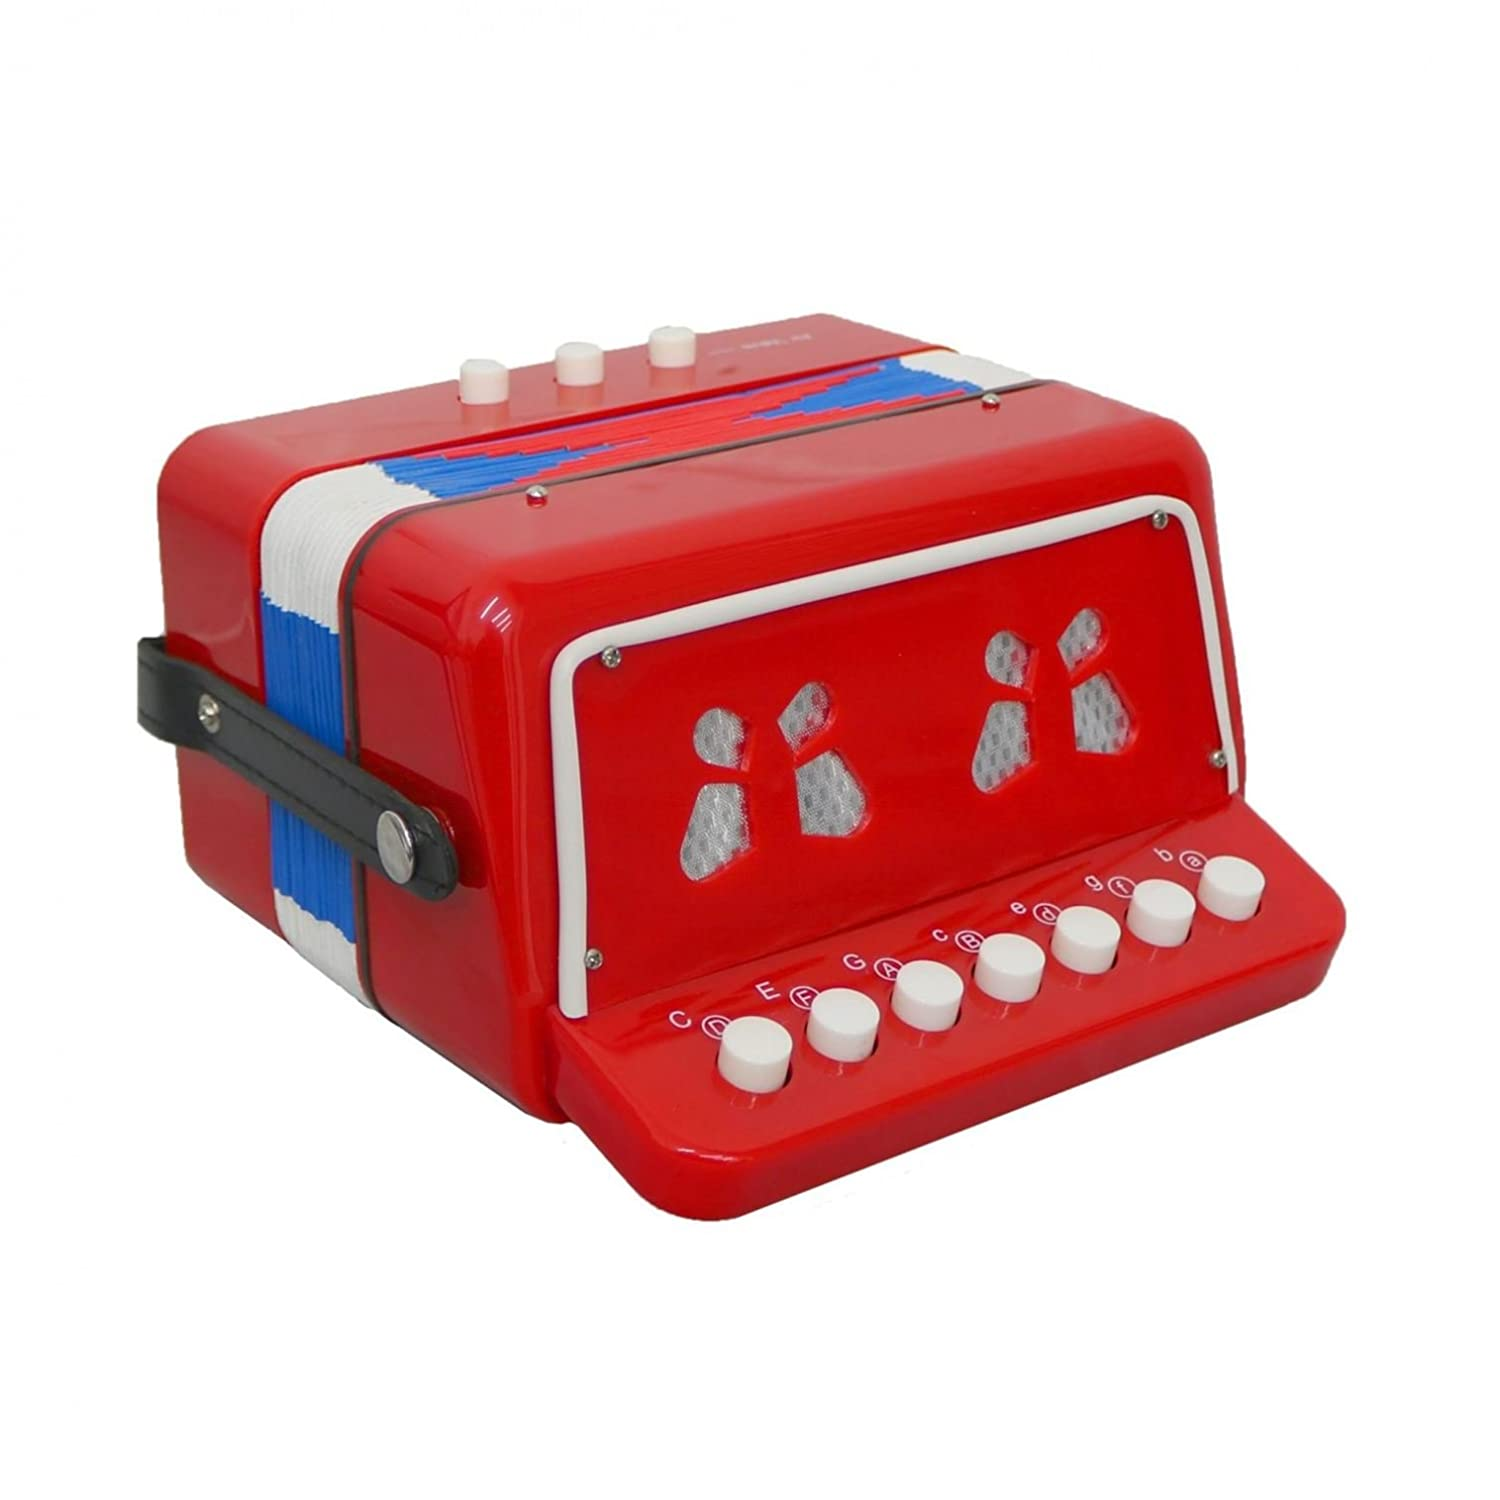 Oypla 7 Keys 2 Bass Children's Red Toy Accordion Musical Instrument 3628A2P